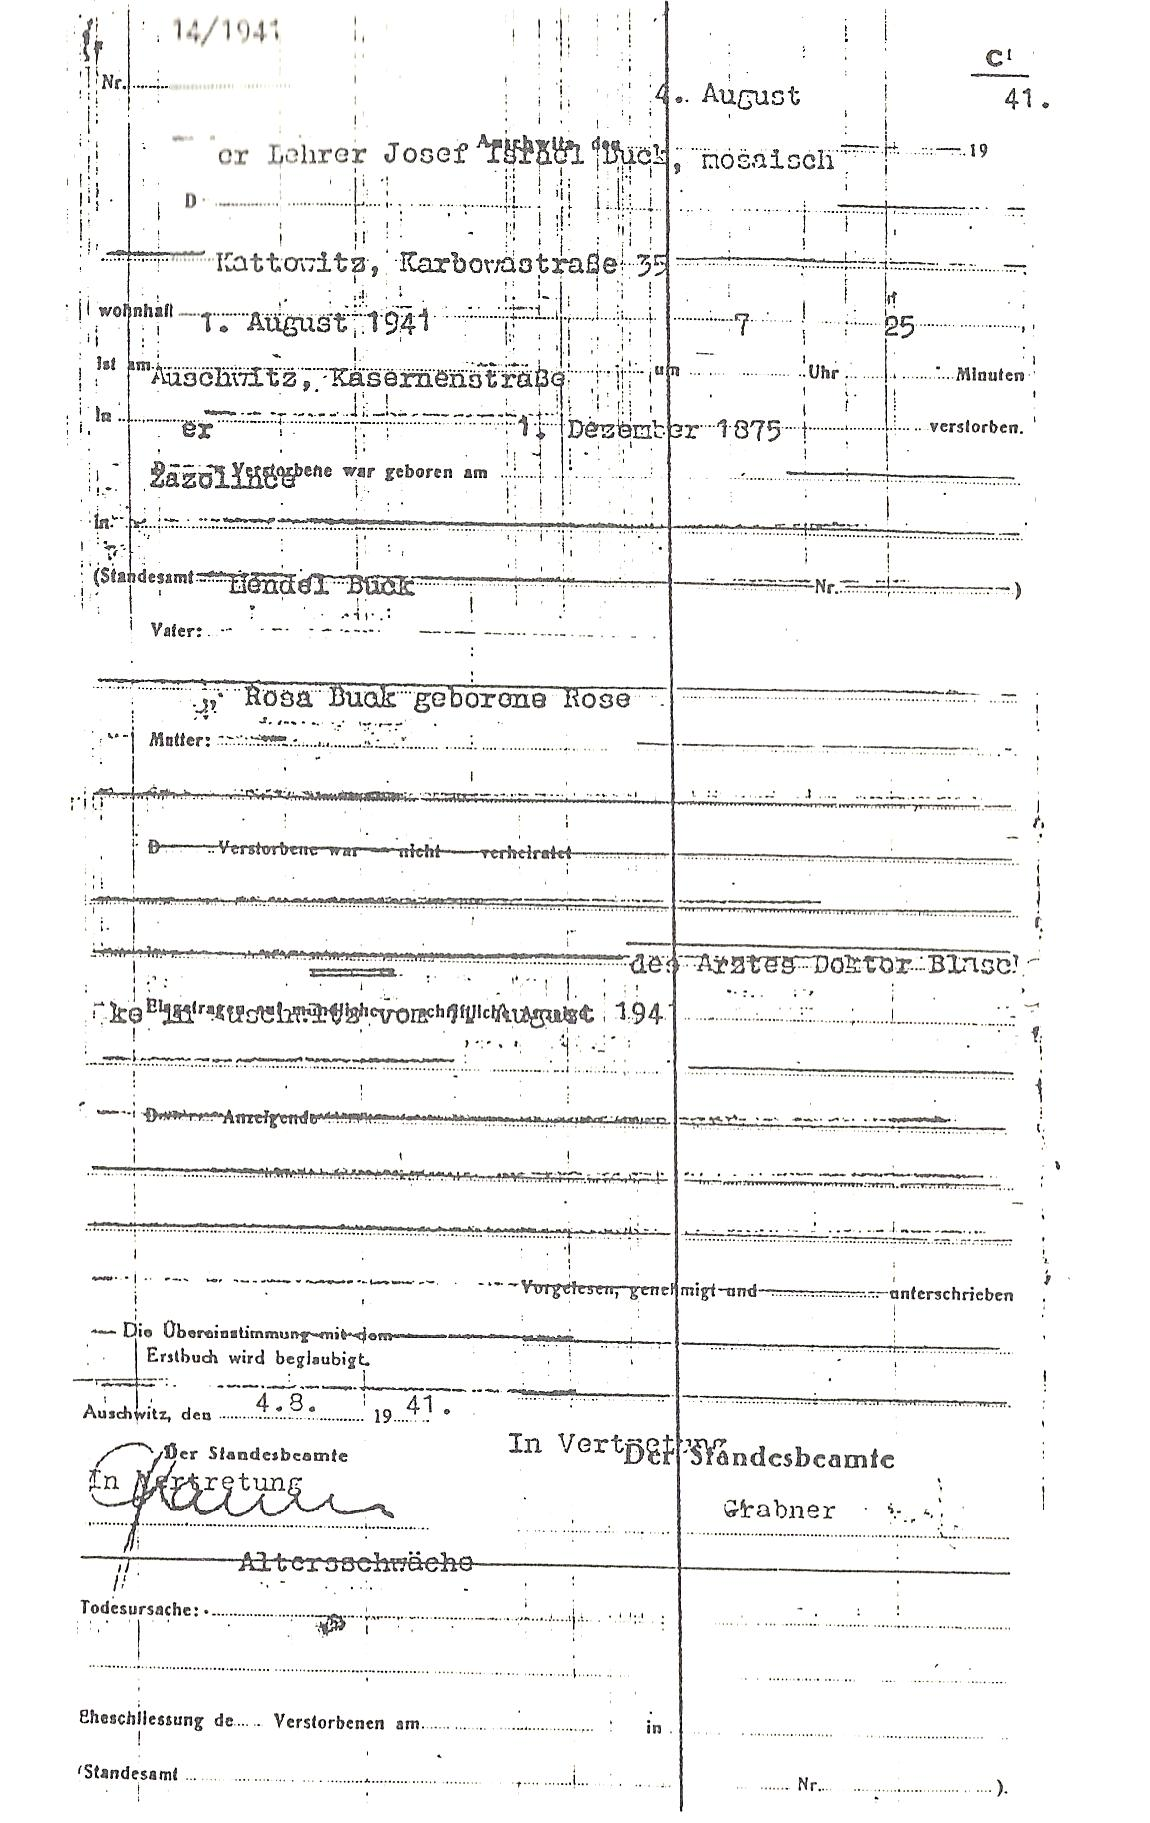 Pages from the auschwitz death registry volumes this auschwitz camp death certificate reports that prisoner josef buck a jewish teacher from kattowitz was 65 years old when he died on august 1 1941 1betcityfo Gallery